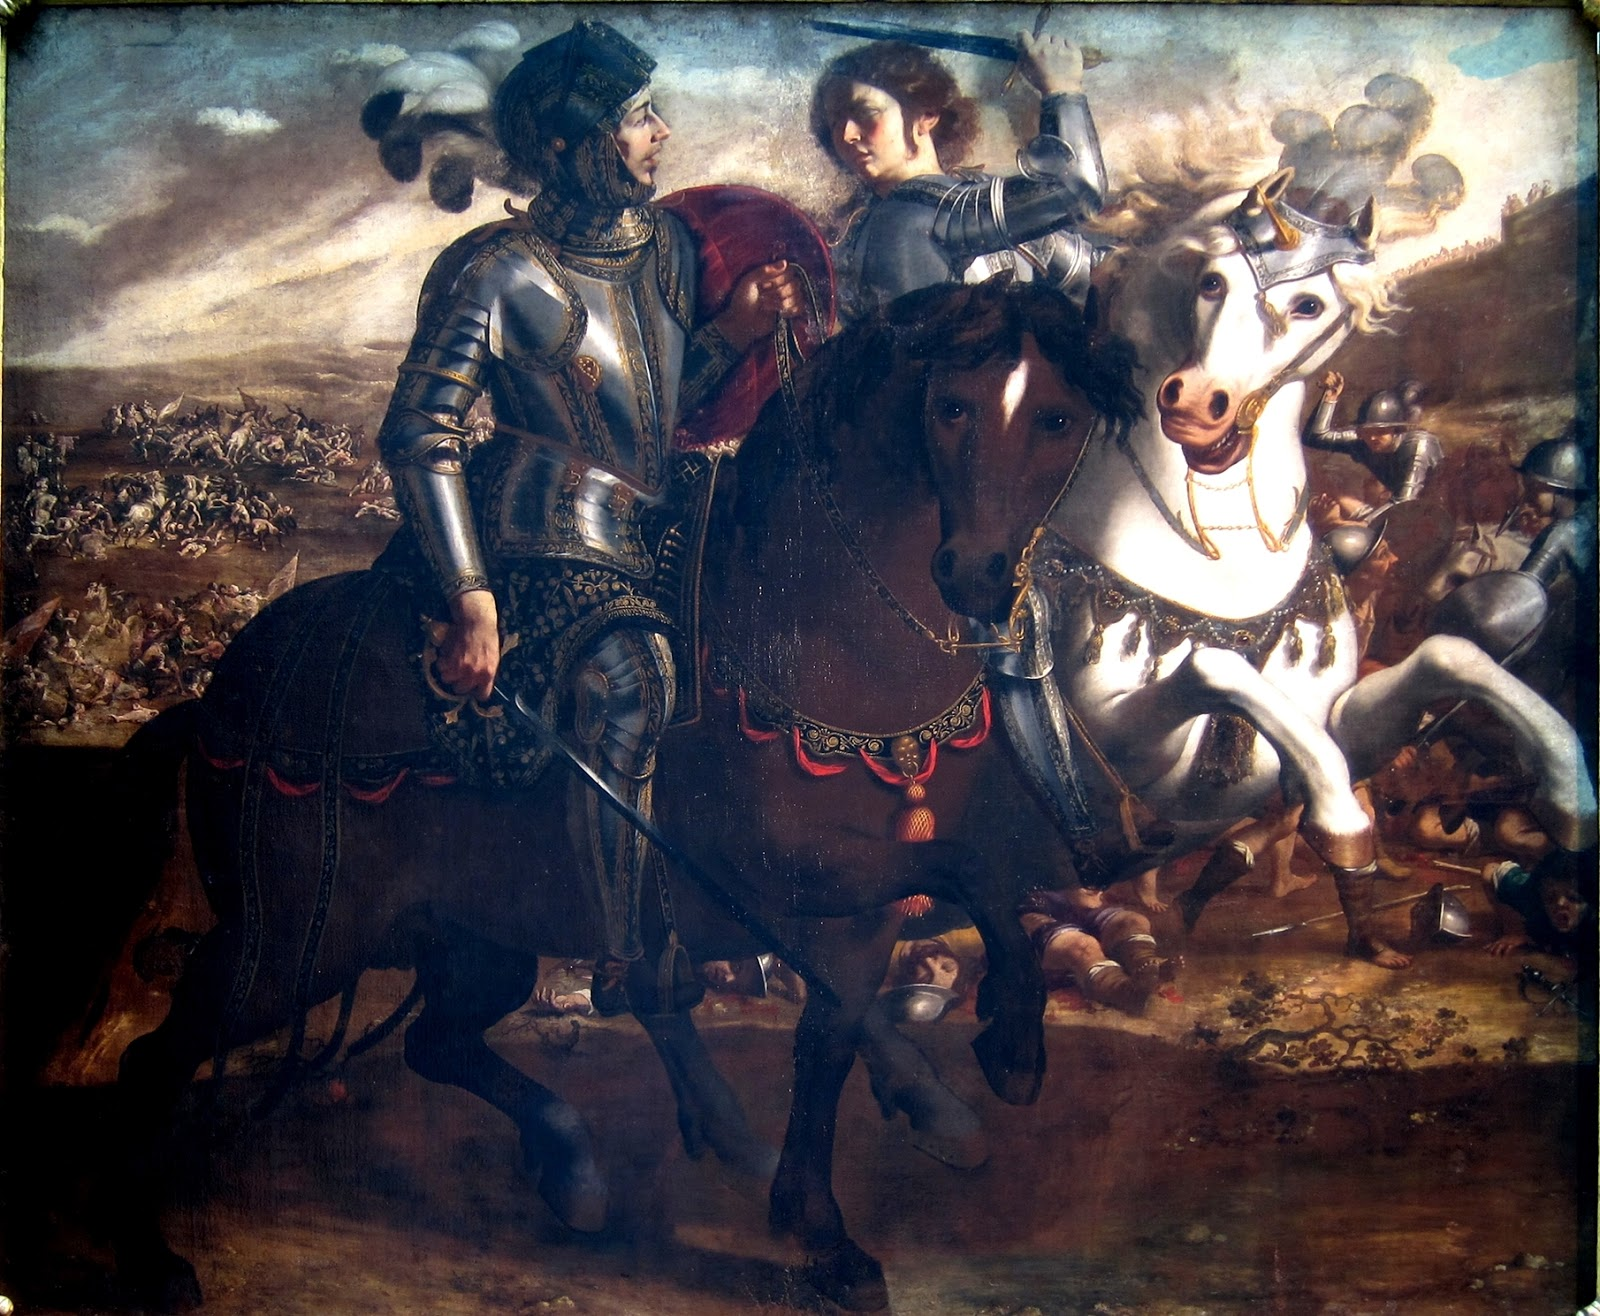 FALLEN TANCRED PRINCE OF GALILEE /& ERMINIA PAINTING 1ST CRUSADE ART CANVASPRINT